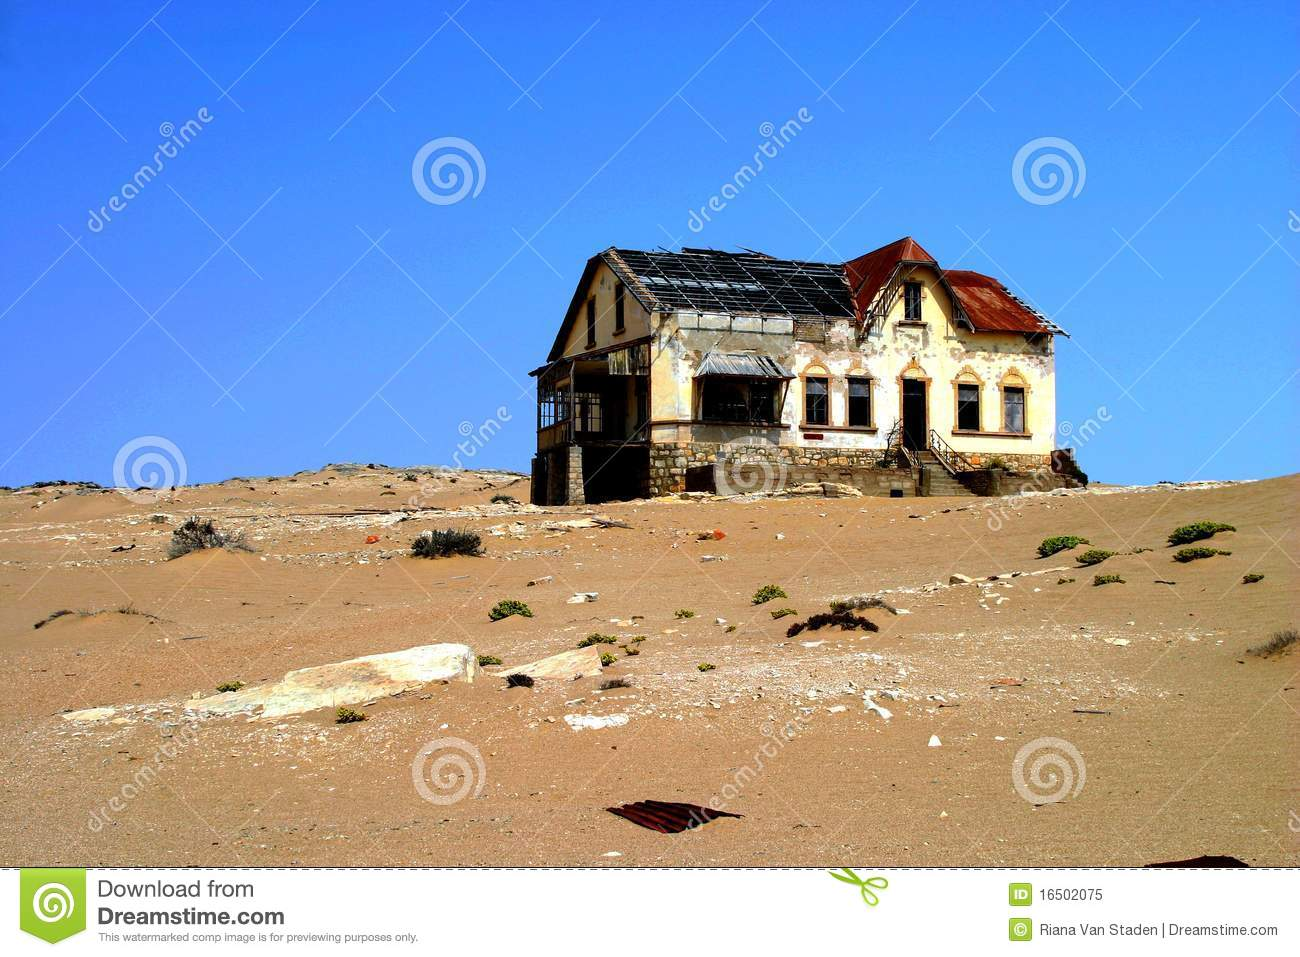 Abandoned House In The Ghost Town Of Kolmanskop In Namibia Stock.